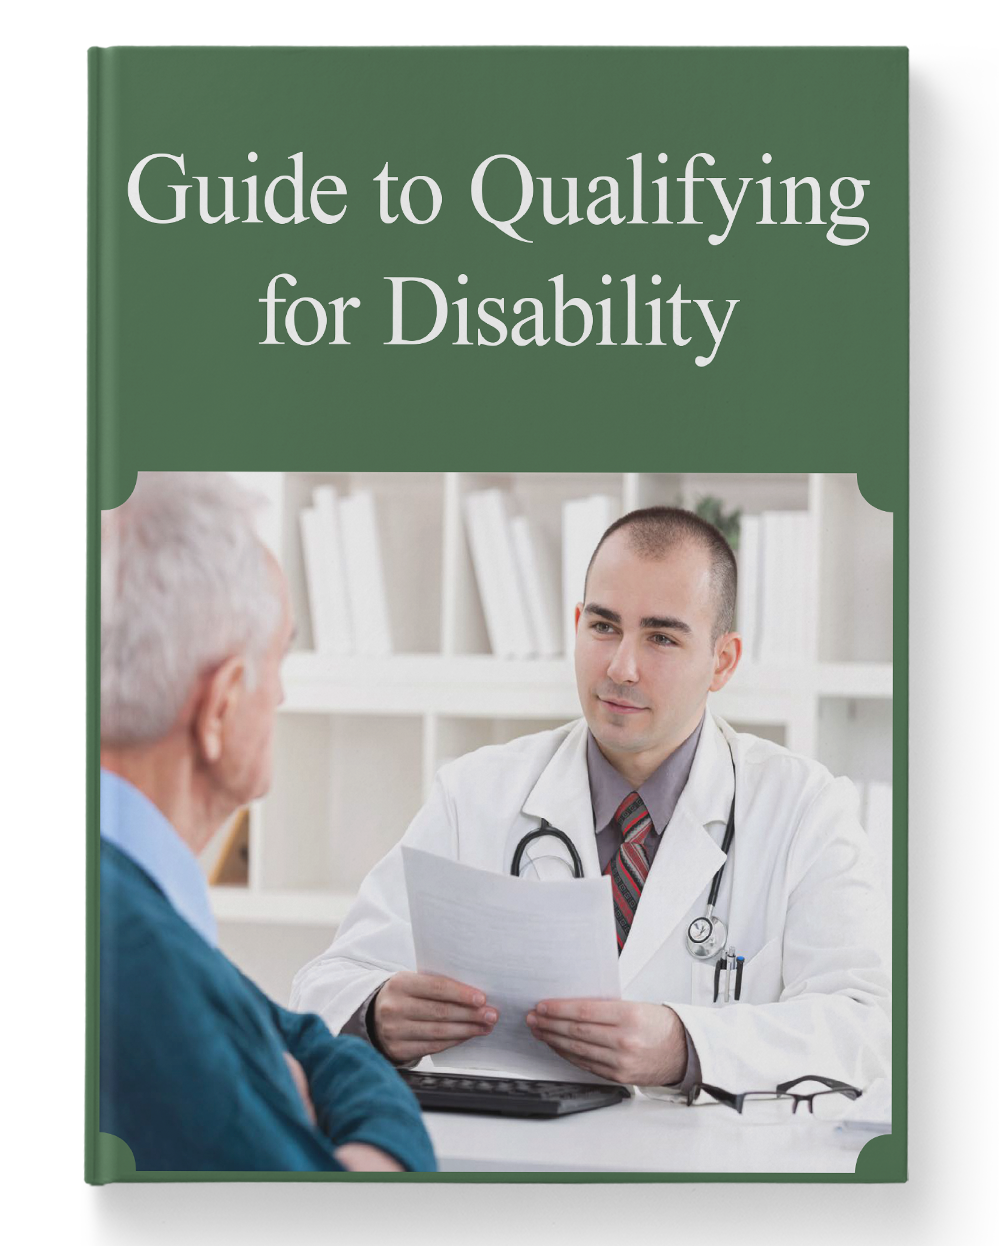 Guide to Qualifying for Disability 3D Cover